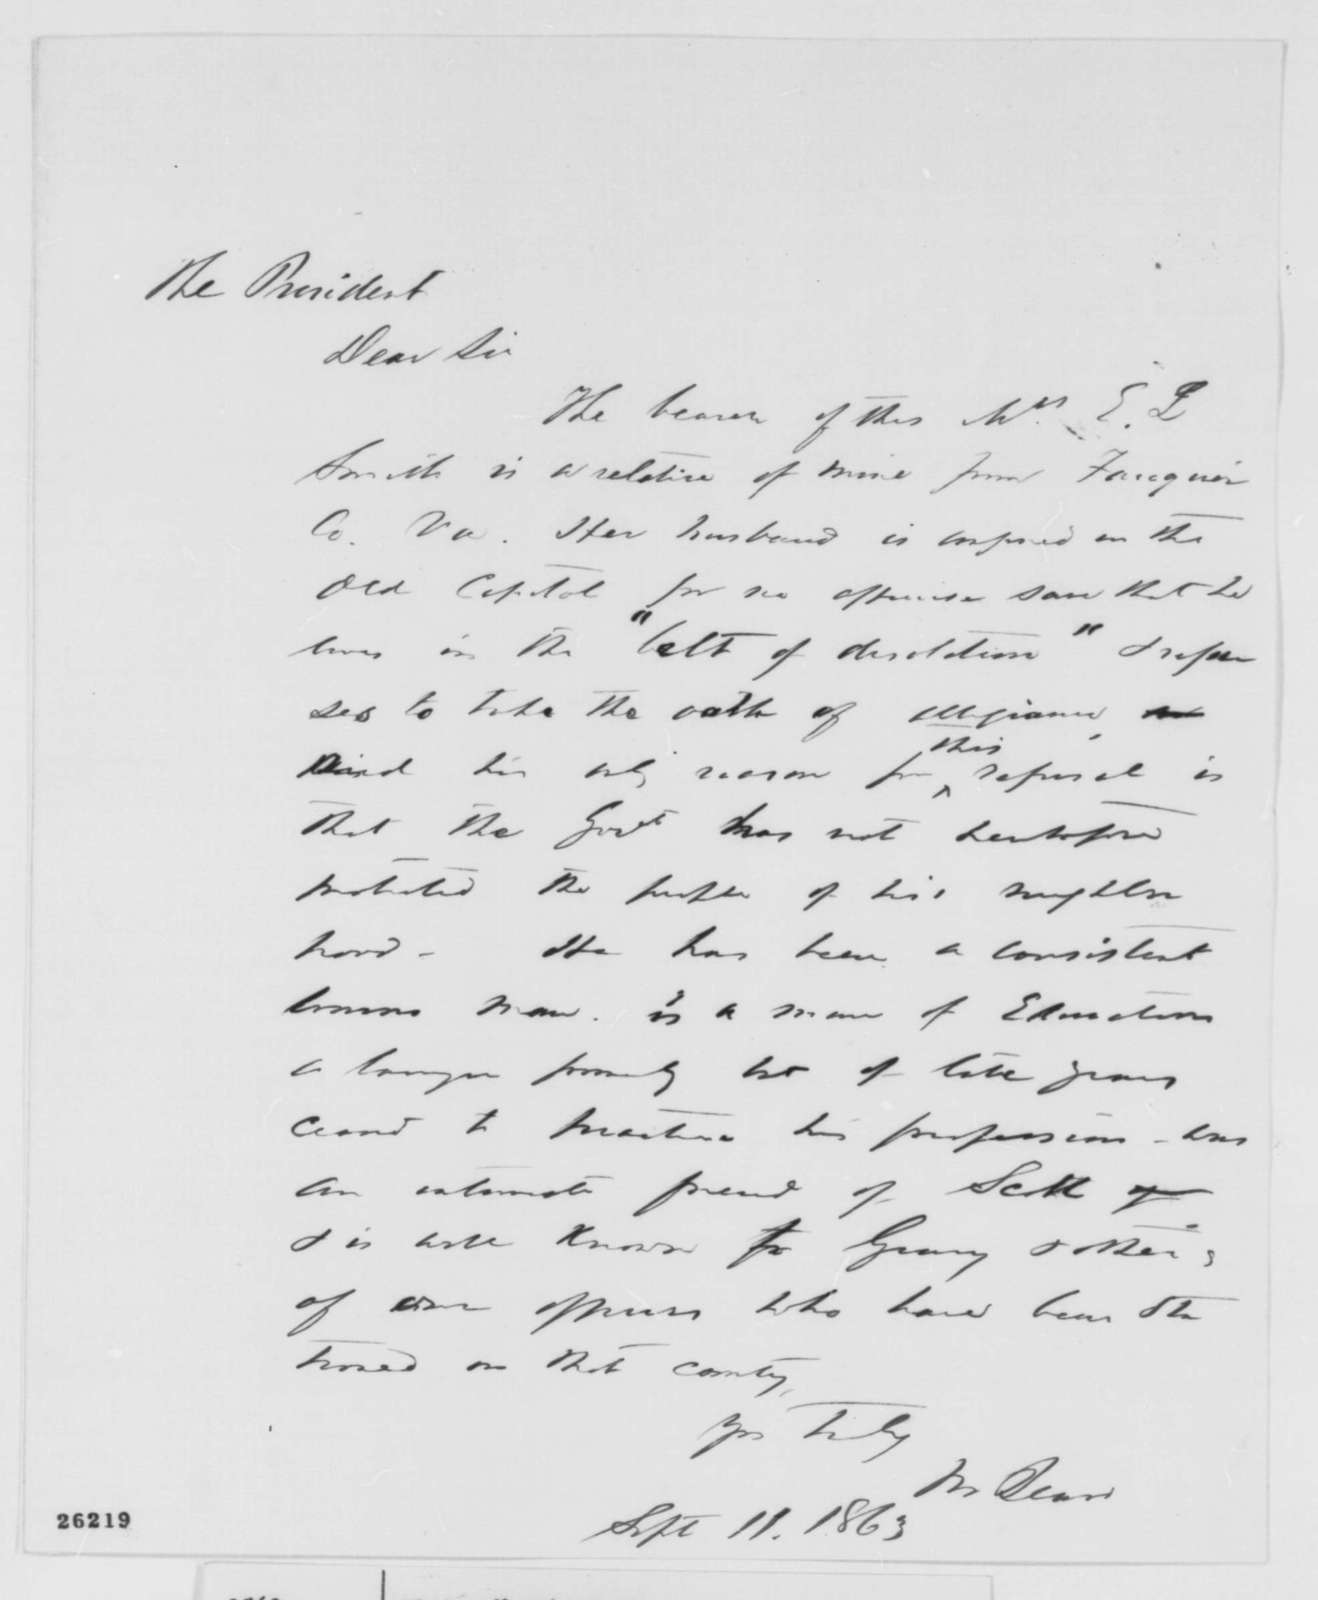 Montgomery Blair to Abraham Lincoln, Friday, September 11, 1863  (Introduces Mrs. E. J. Smith)